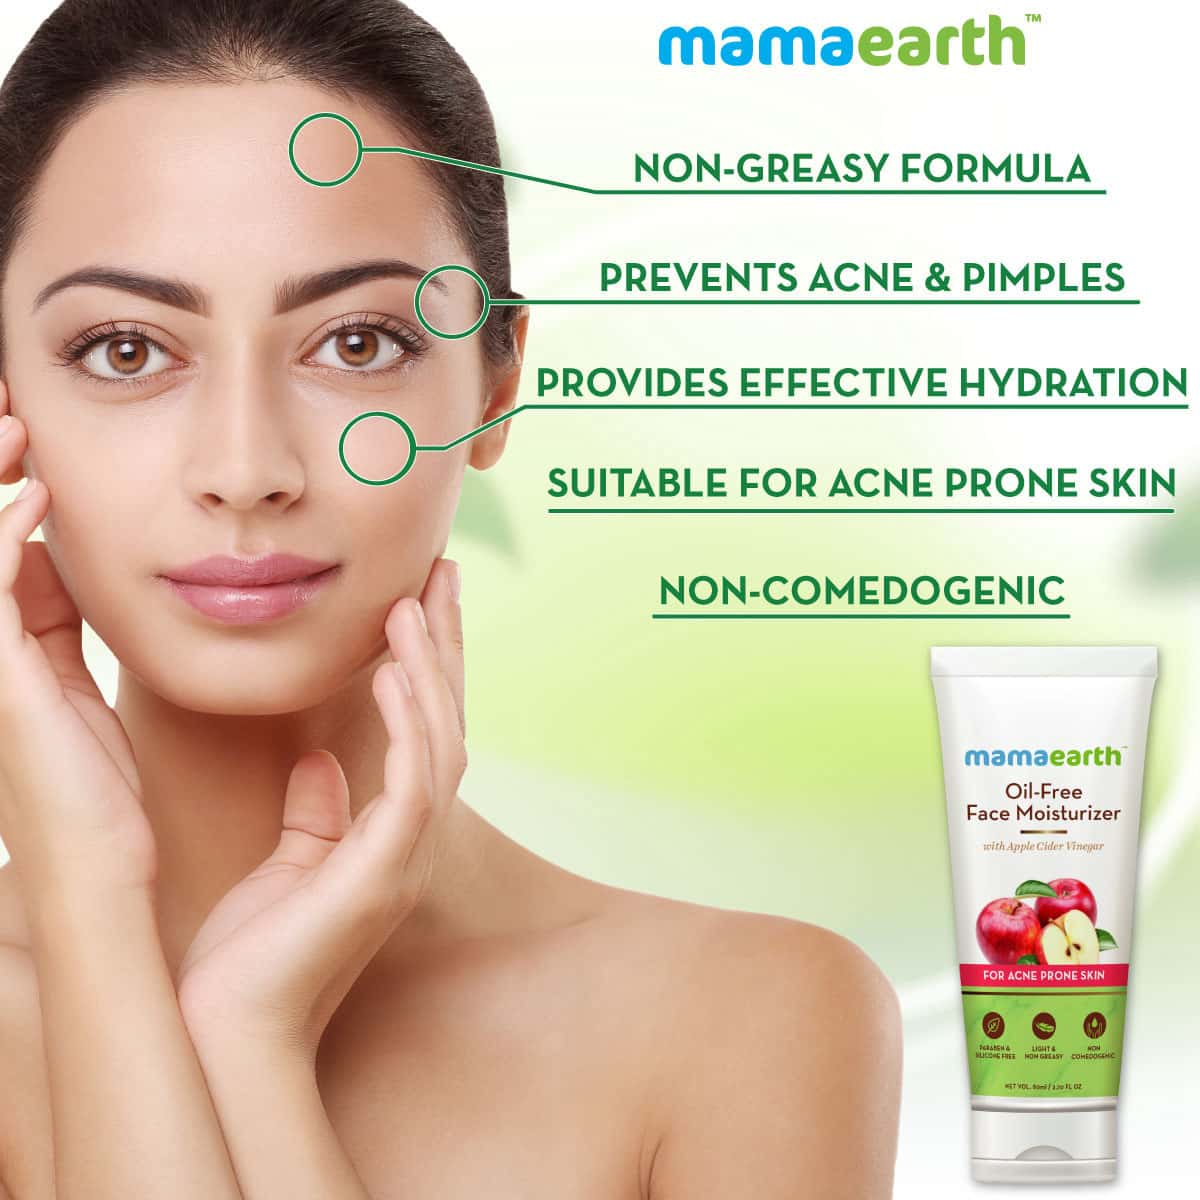 Mamaearth Oil Free Moisturizer For Face With Apple Cider Vinegar For Acne Prone Skin - 80ml